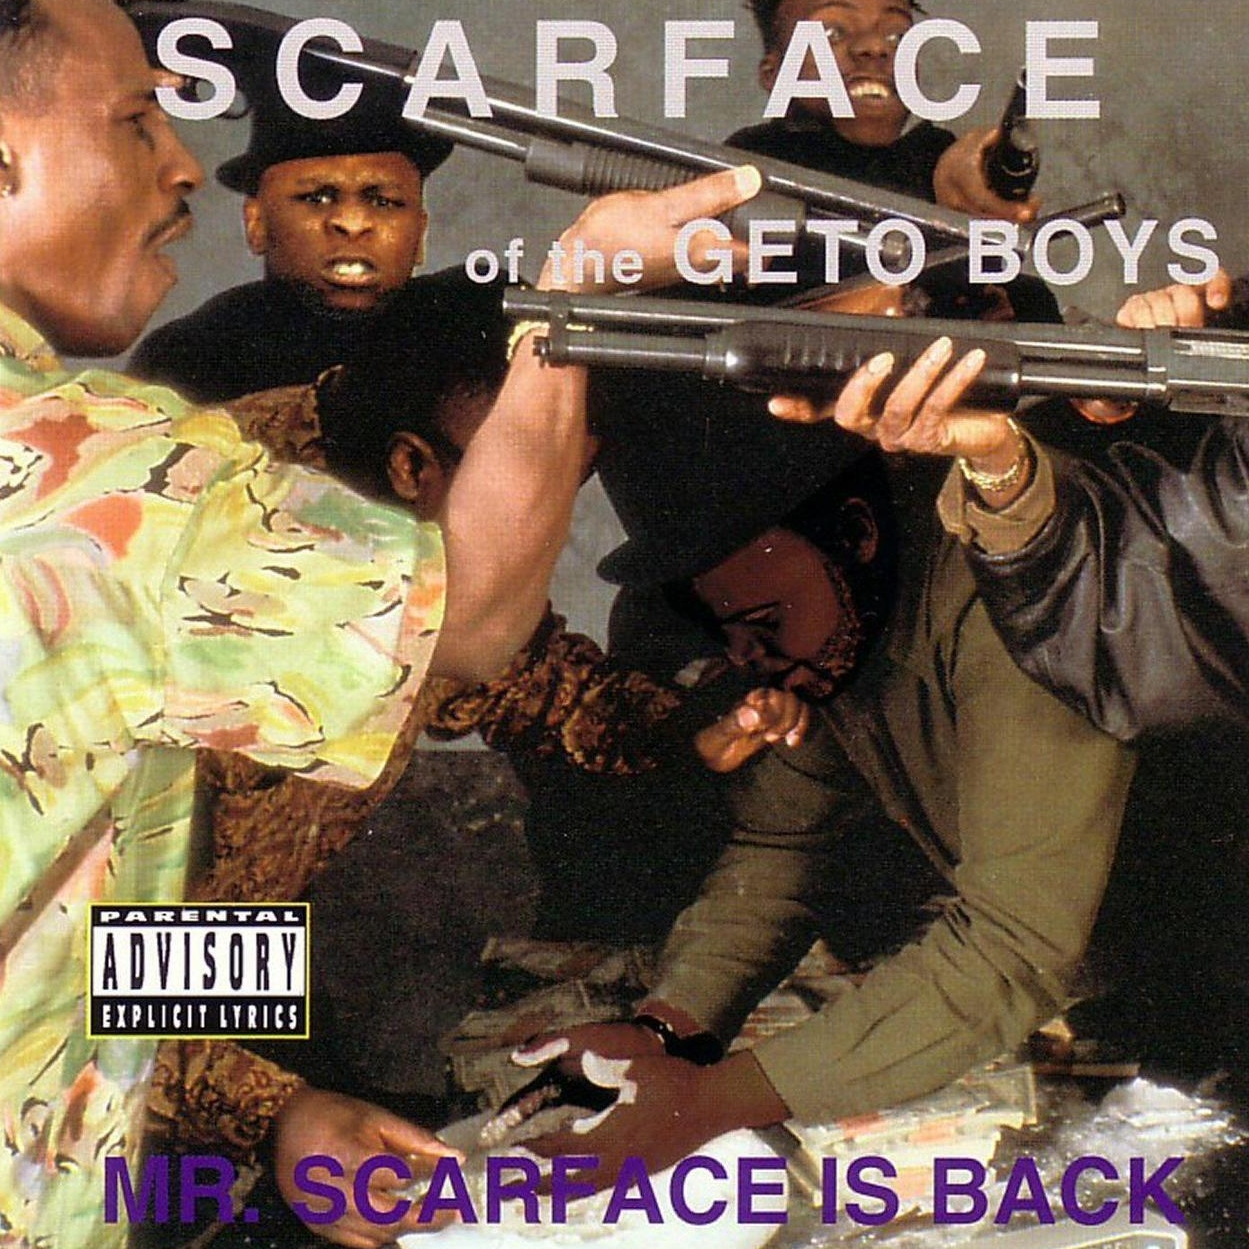 Scarface_Mr_Scarface_Is_Back.jpg